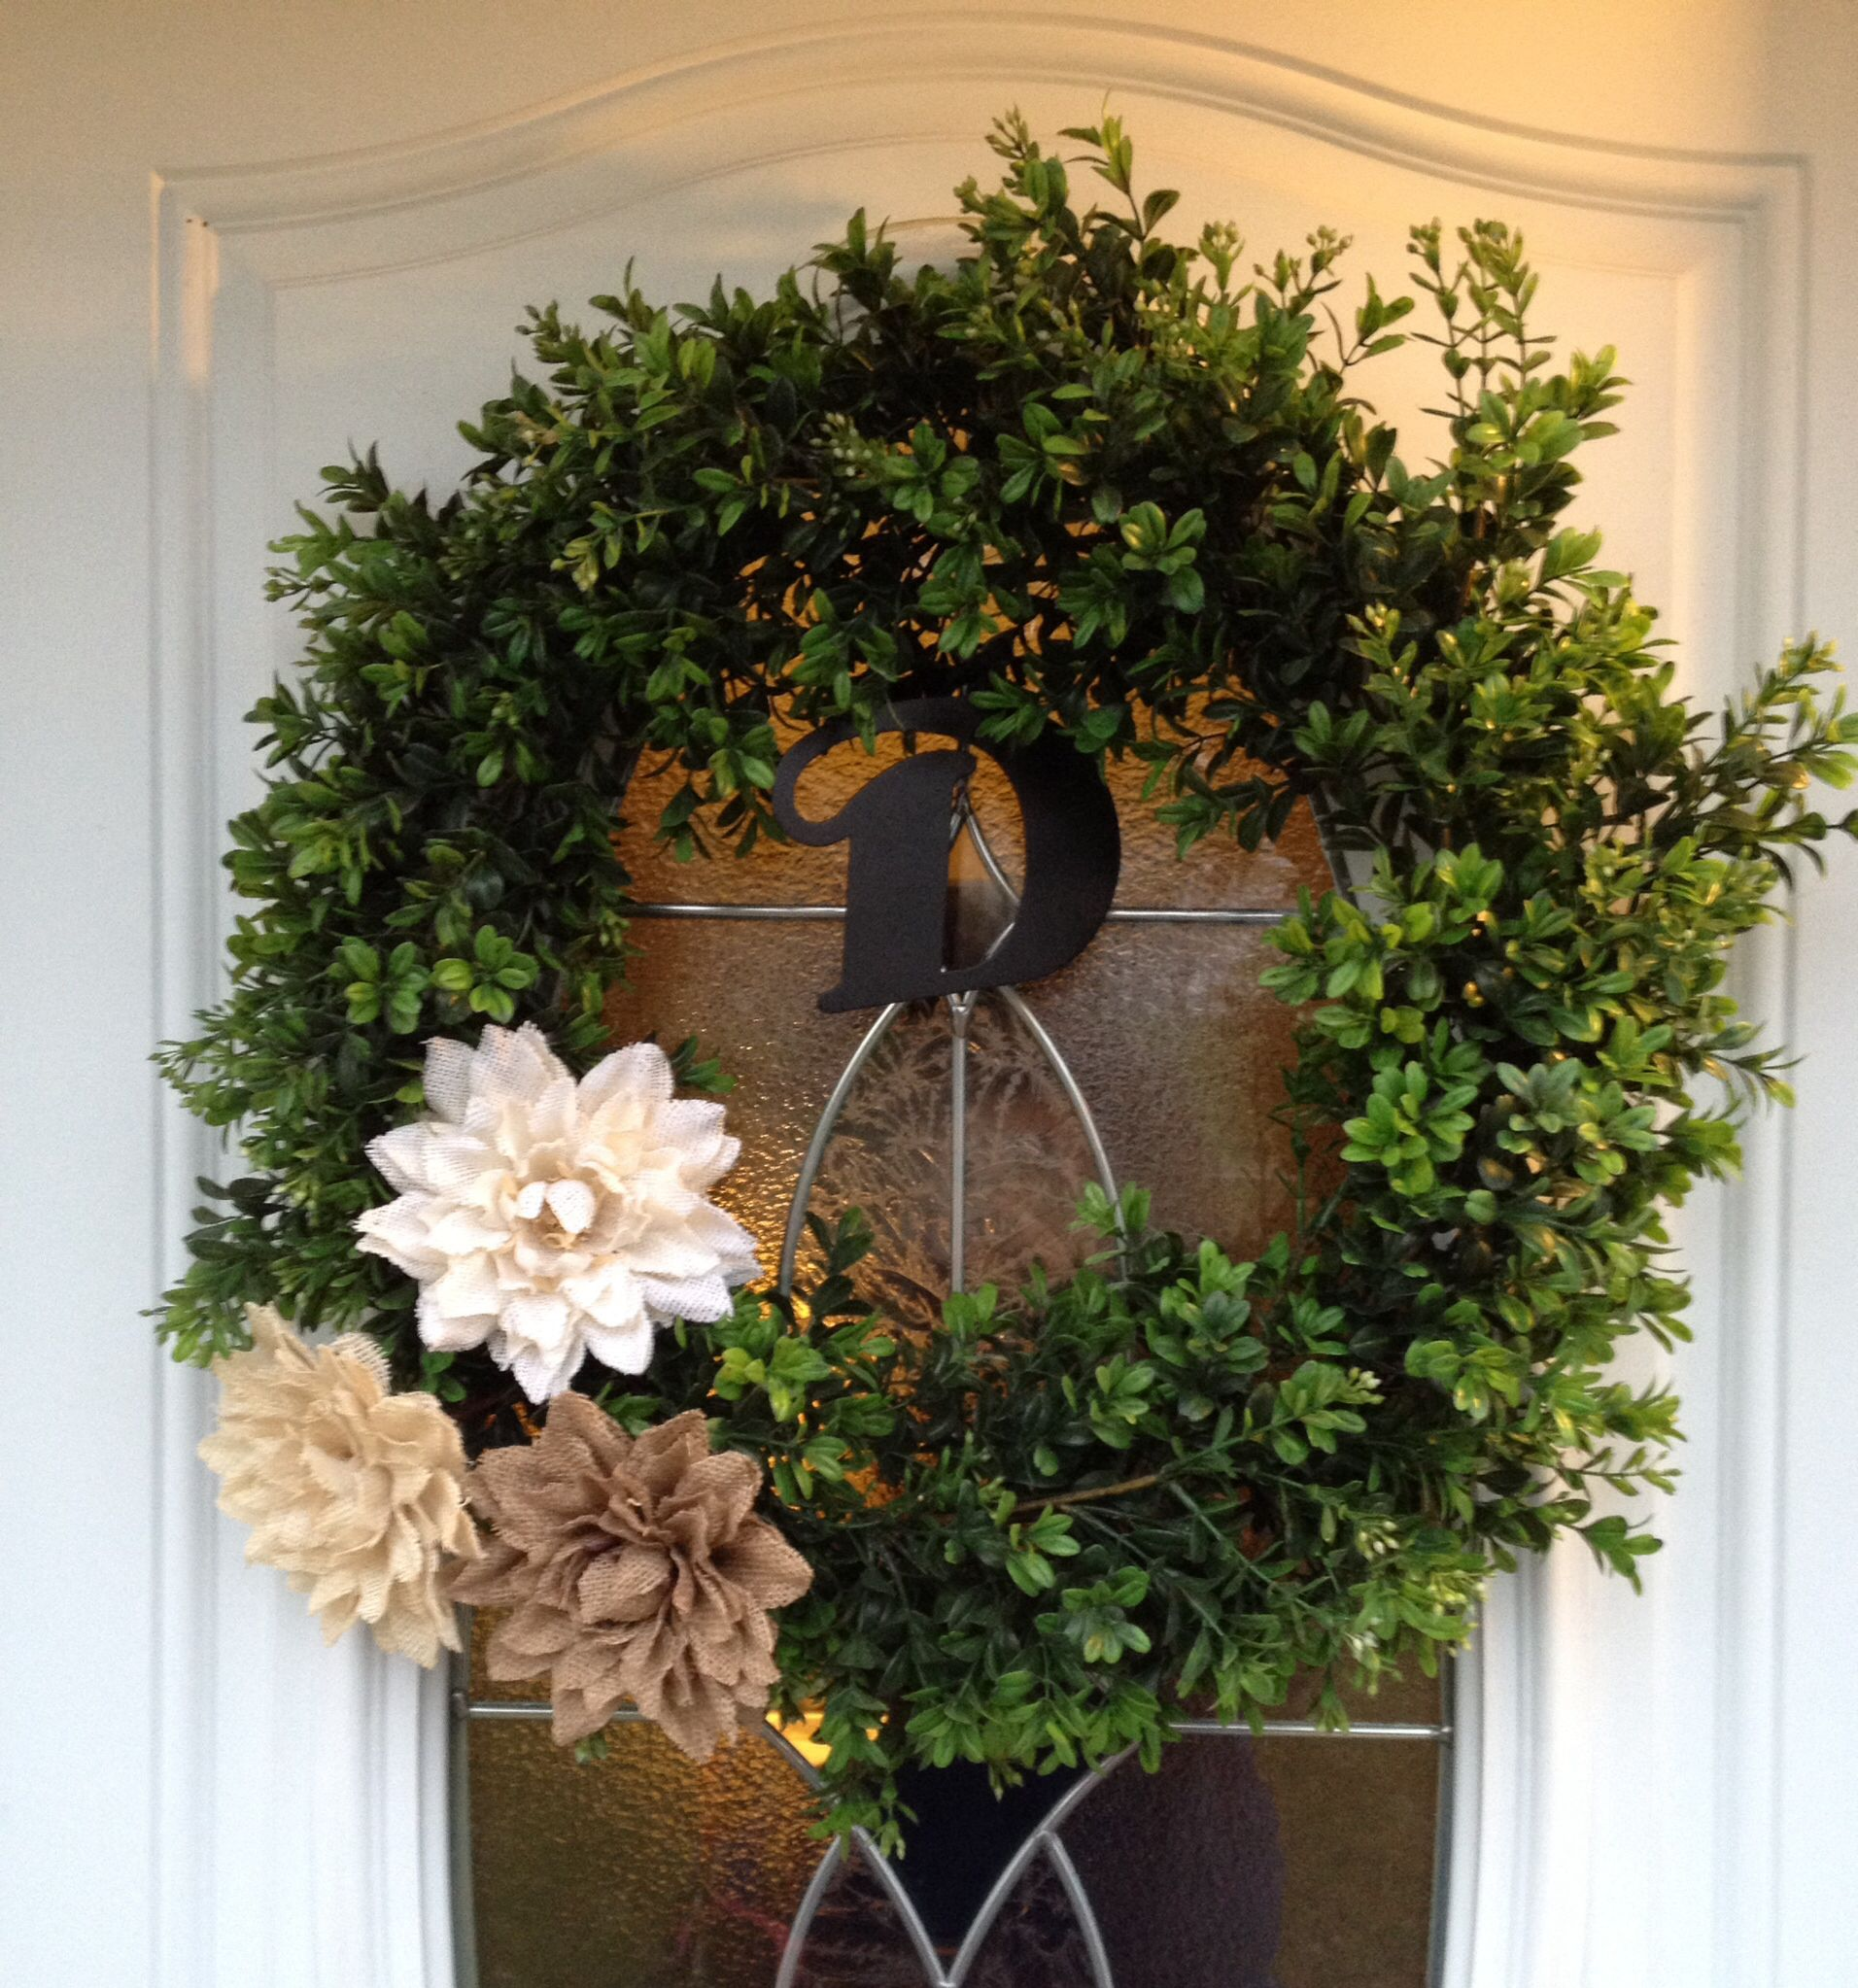 13 Lush Spring Wedding Decorations To Bring To Life Your: Spring Wreath, Grapevine Wreath, Wreaths